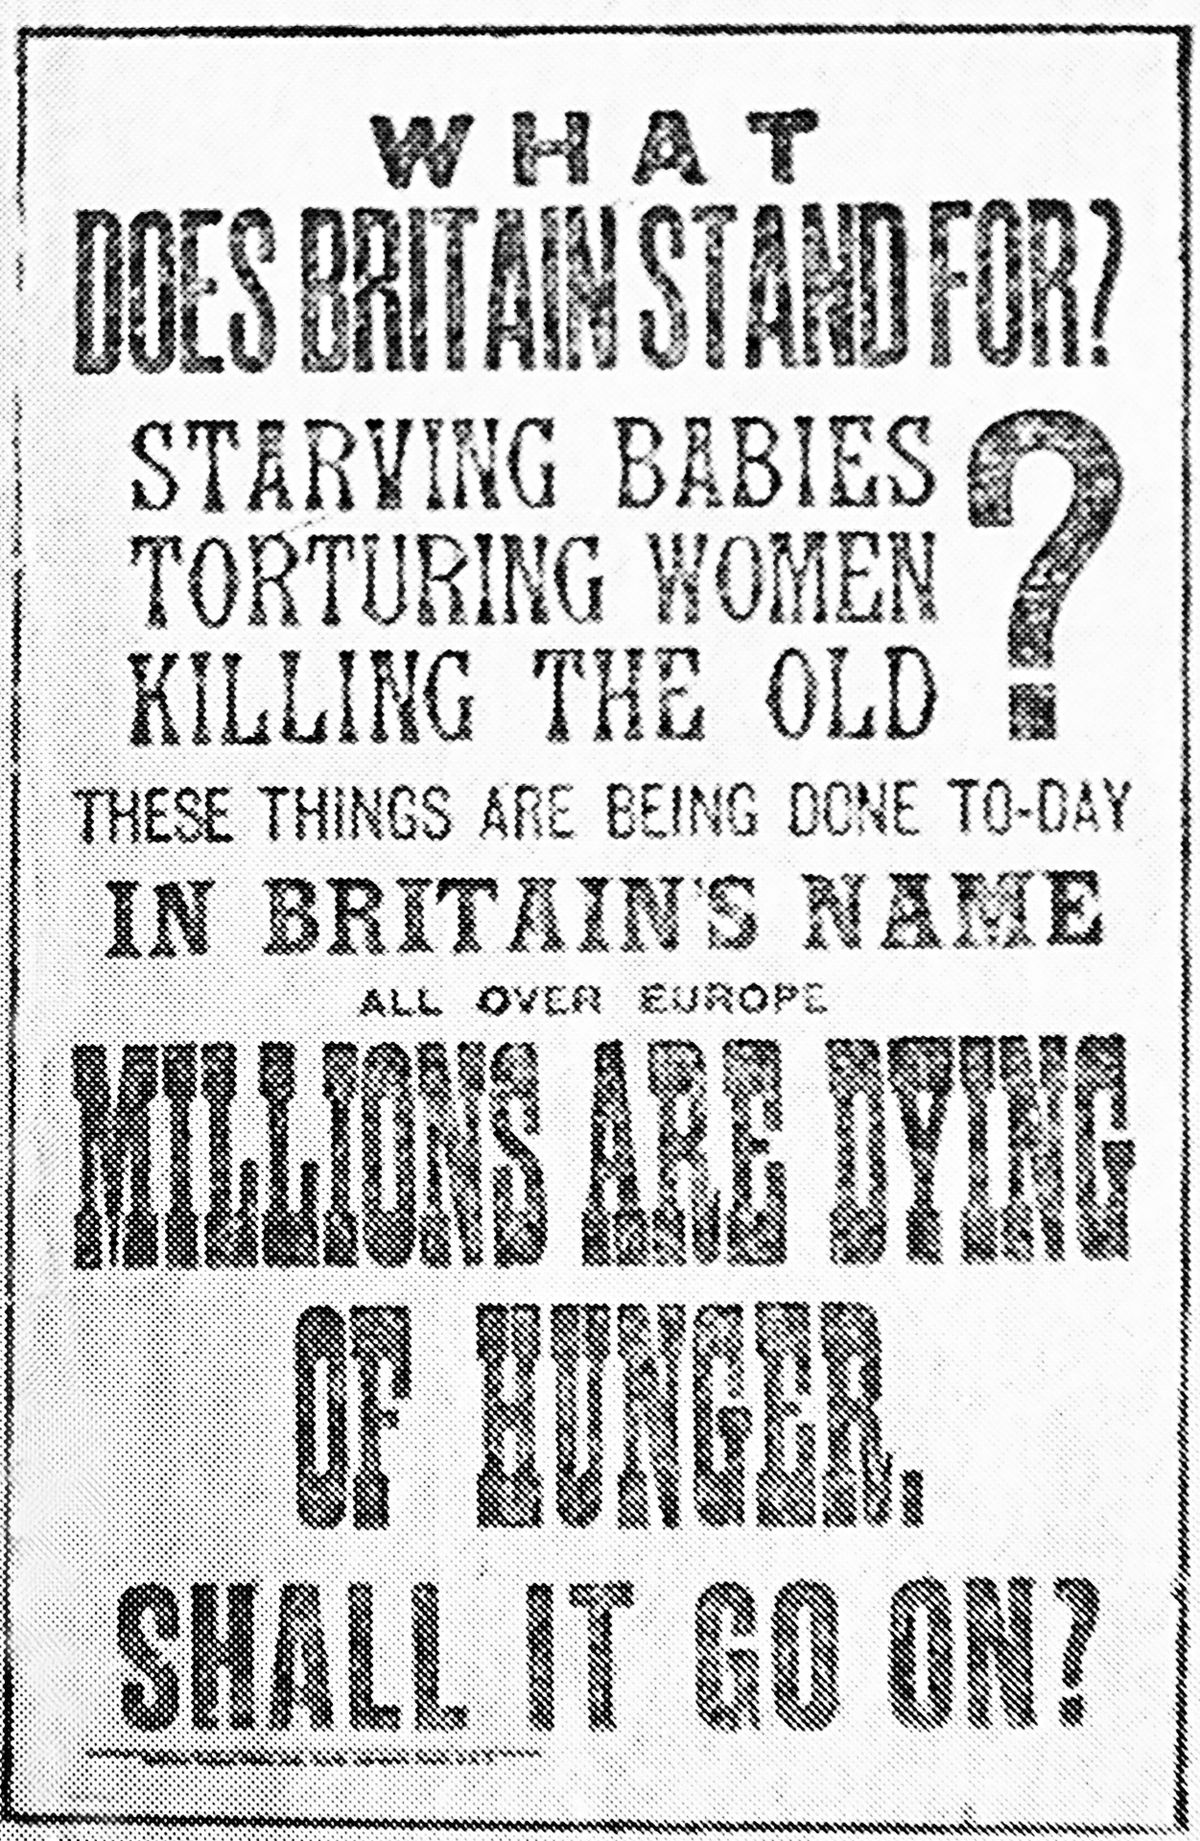 This was carried on the front page of the Daily Herald in May 1919 to galvanise support for the inaugural meeting of the Save The Children Fund.